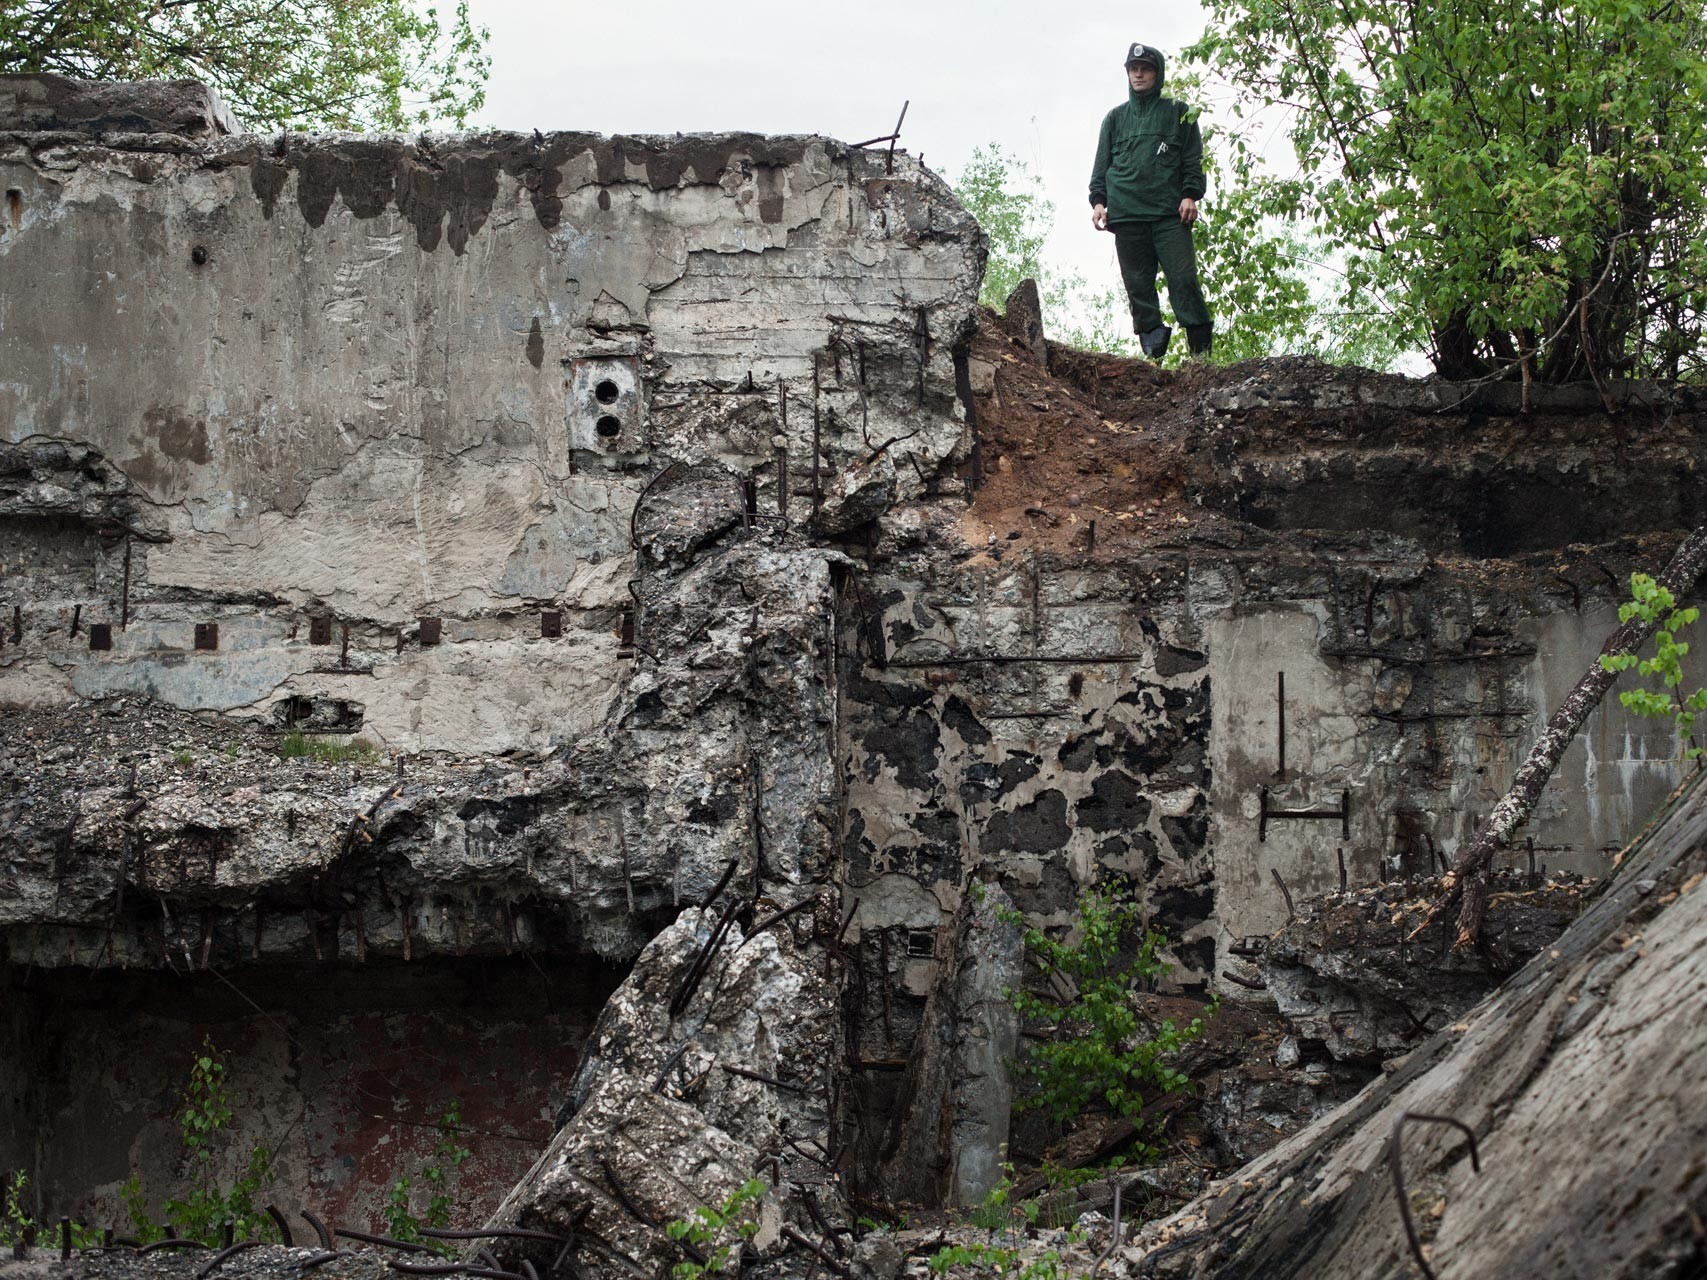 timo-stammberger-photography-russia-launch-pad-tunnel-cold-war-missiles-exploring-ruin-landscape